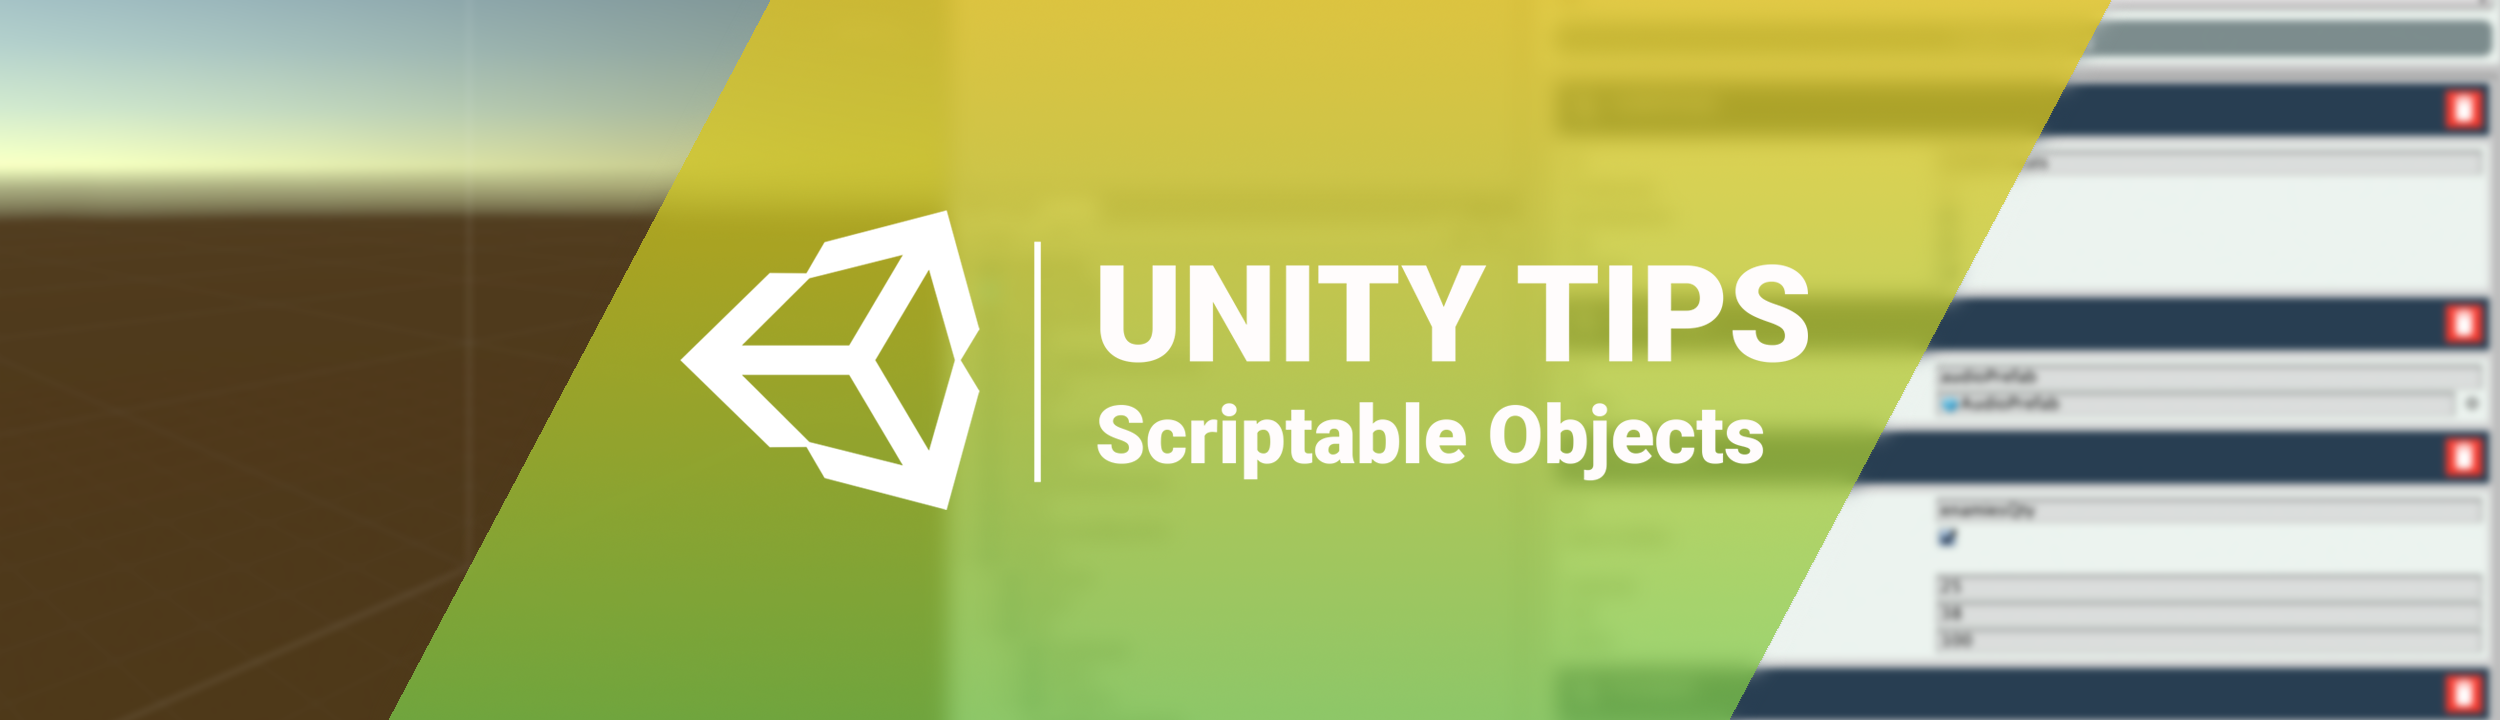 Unity Tips: Scriptable Objects